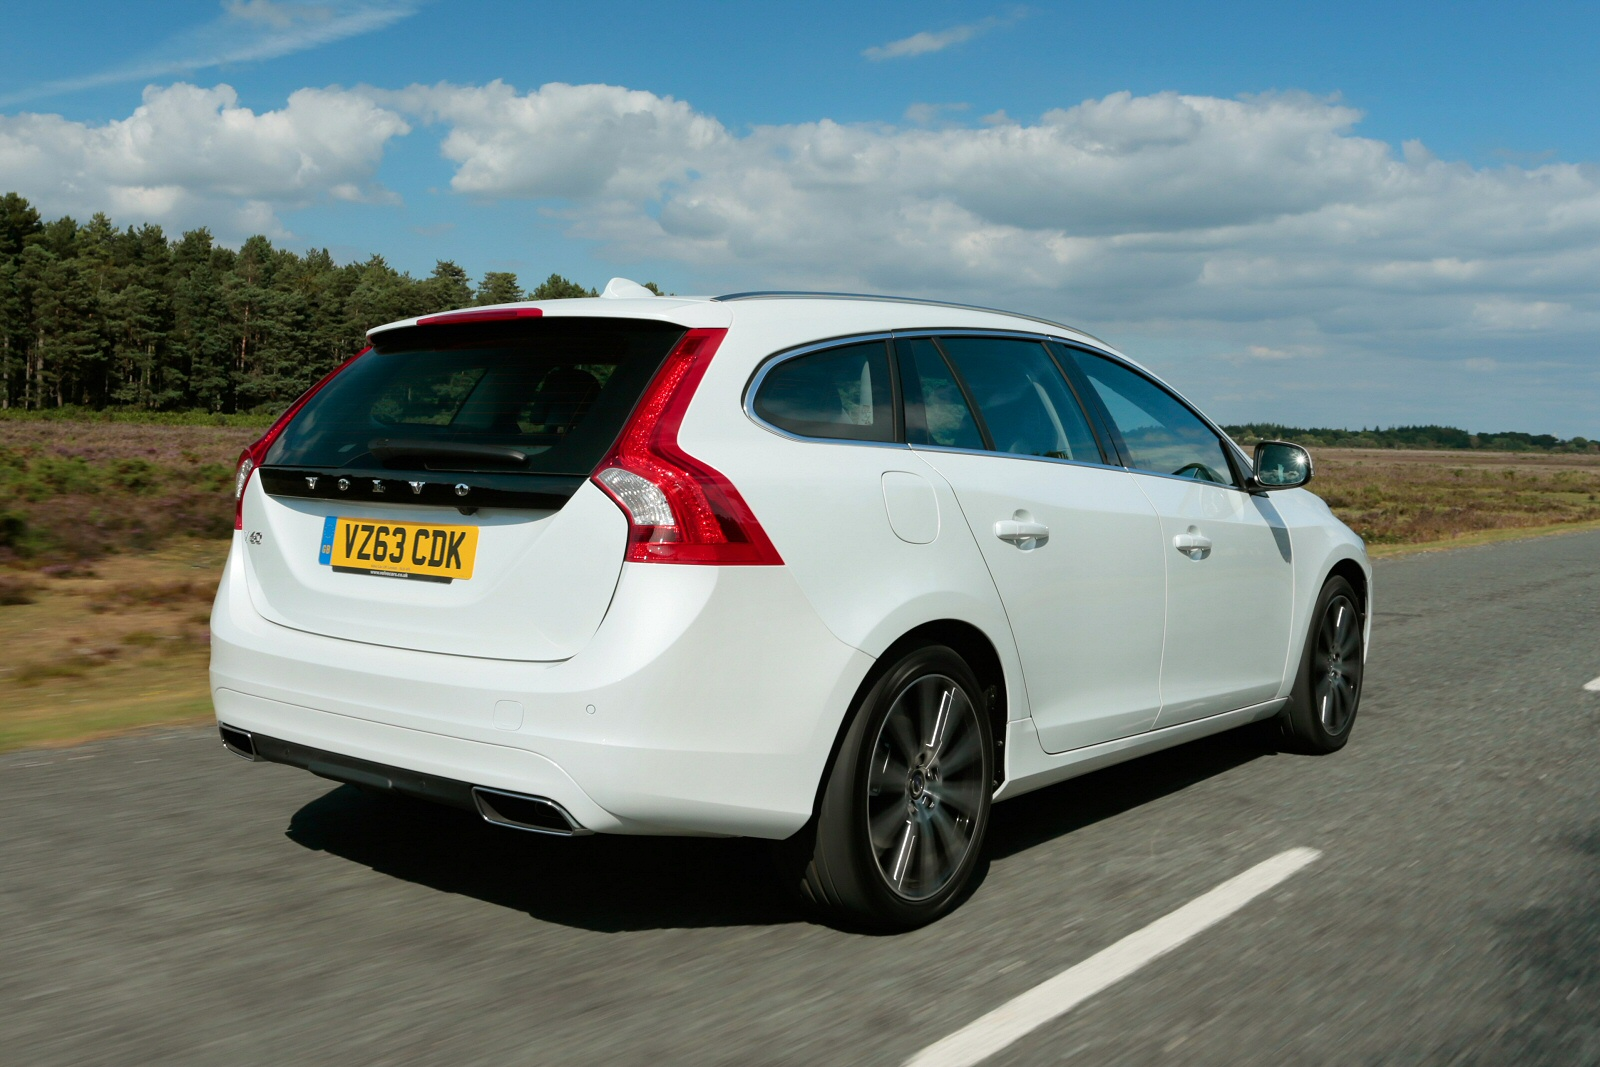 new volvo v60 d4 190 se lux nav 5dr diesel estate for sale bristol street. Black Bedroom Furniture Sets. Home Design Ideas